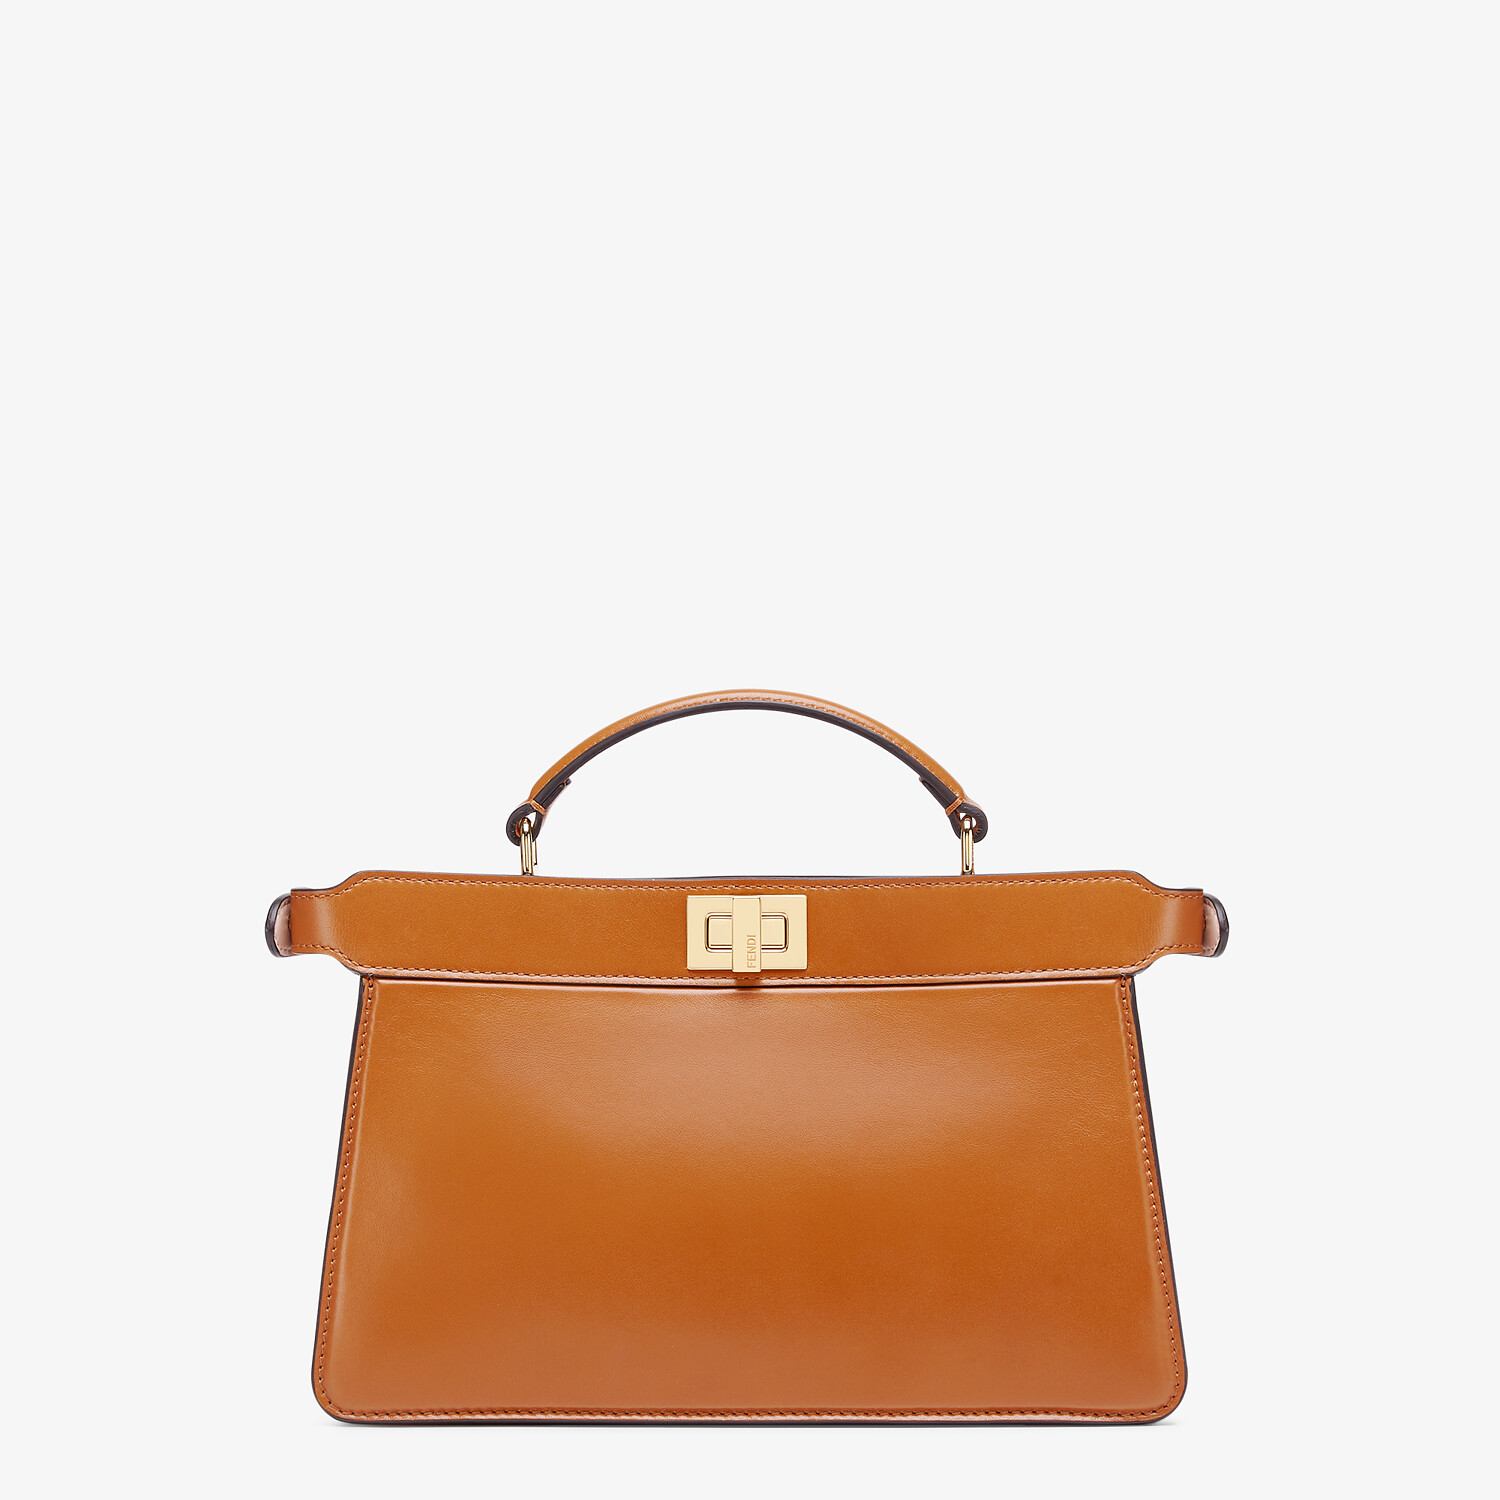 FENDI PEEKABOO ISEEU EAST-WEST - Brown leather bag - view 3 detail